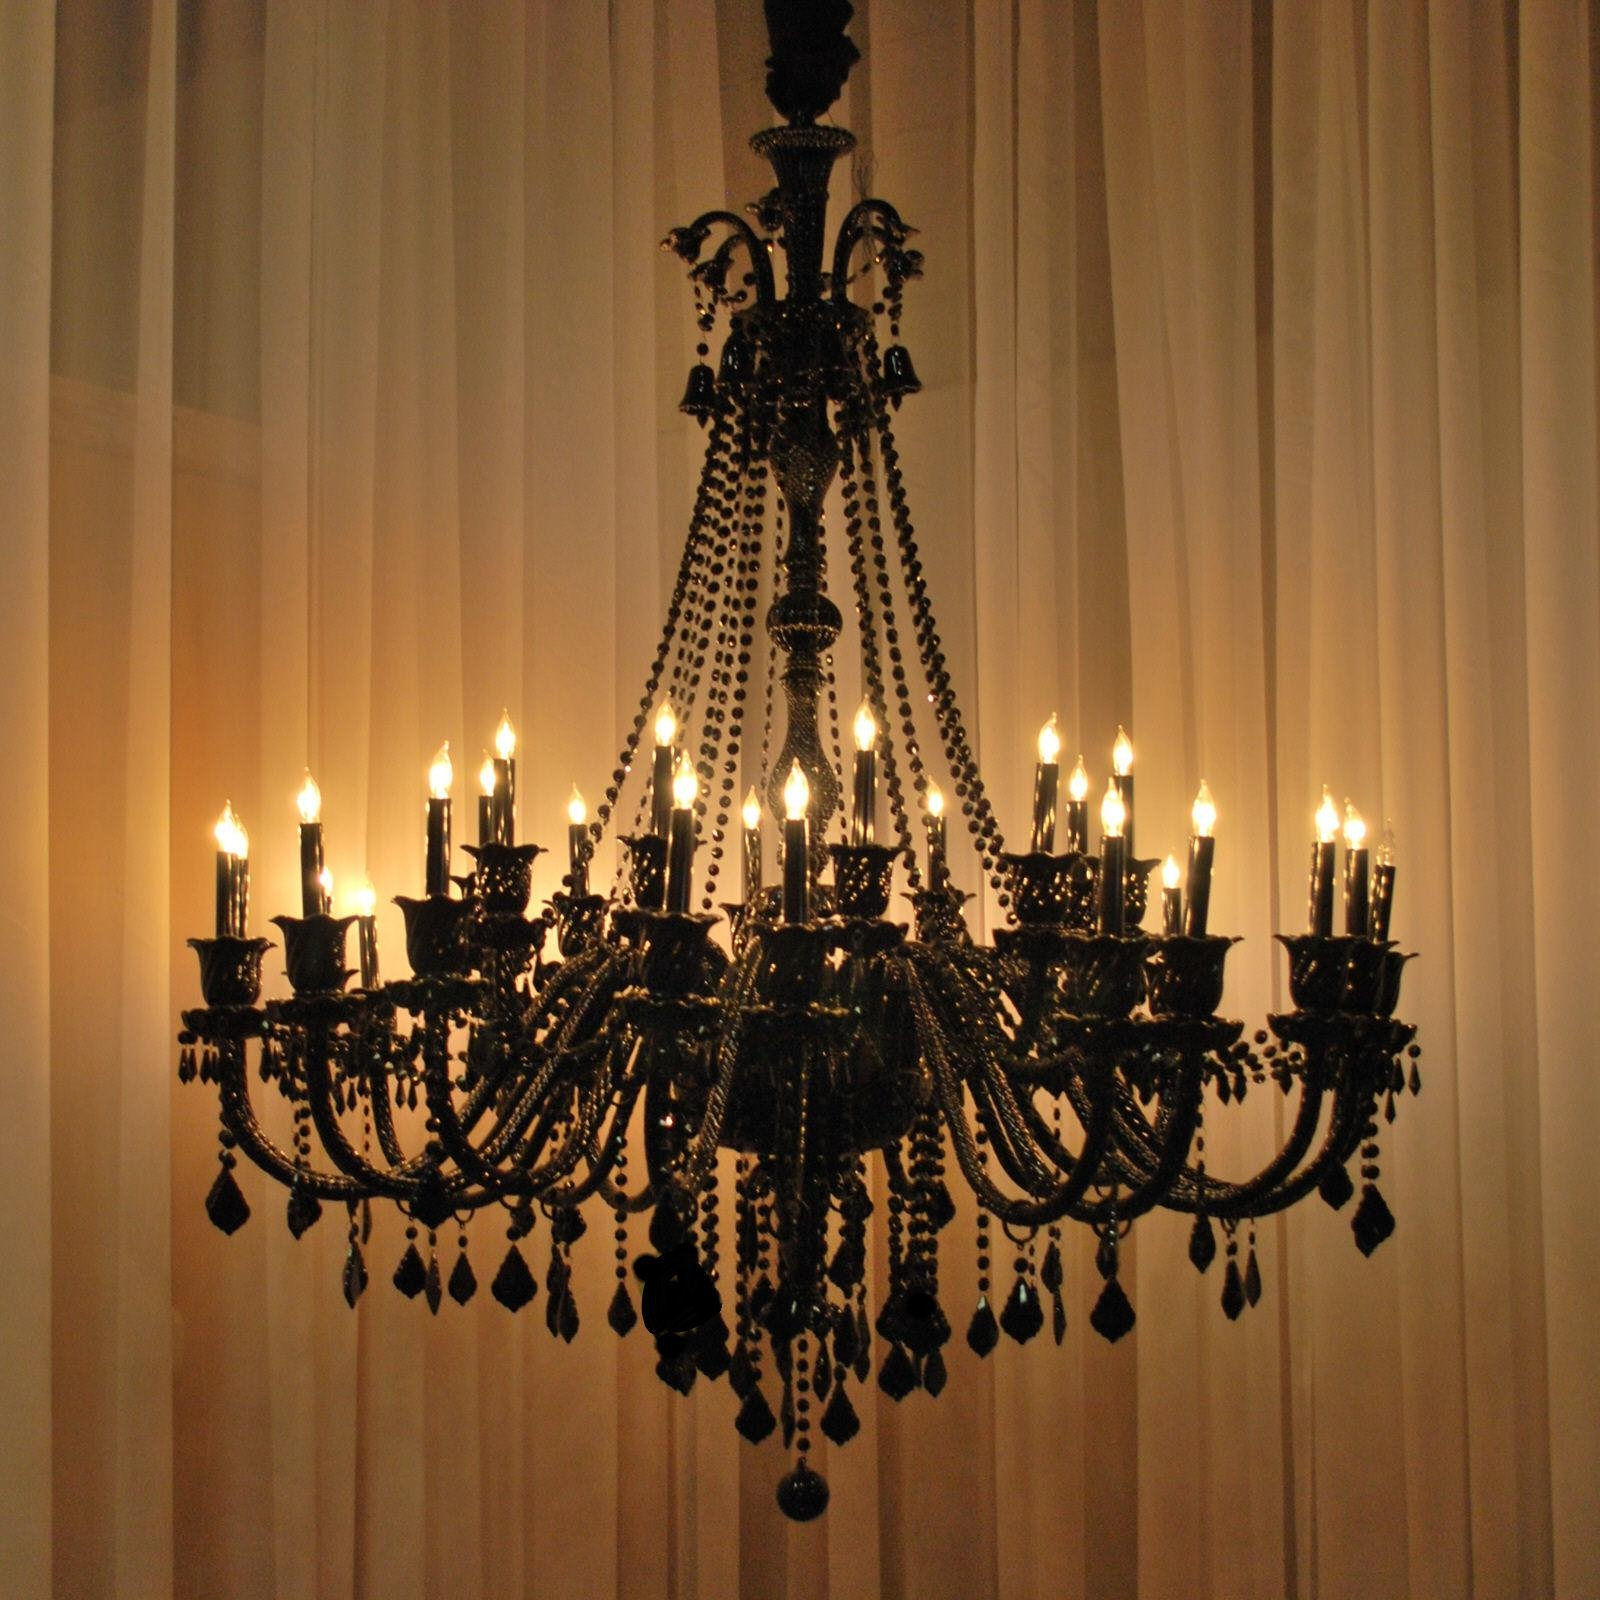 Large Chandeliers Large Crystal Chandeliers Pertaining To Huge Crystal Chandelier (View 5 of 15)